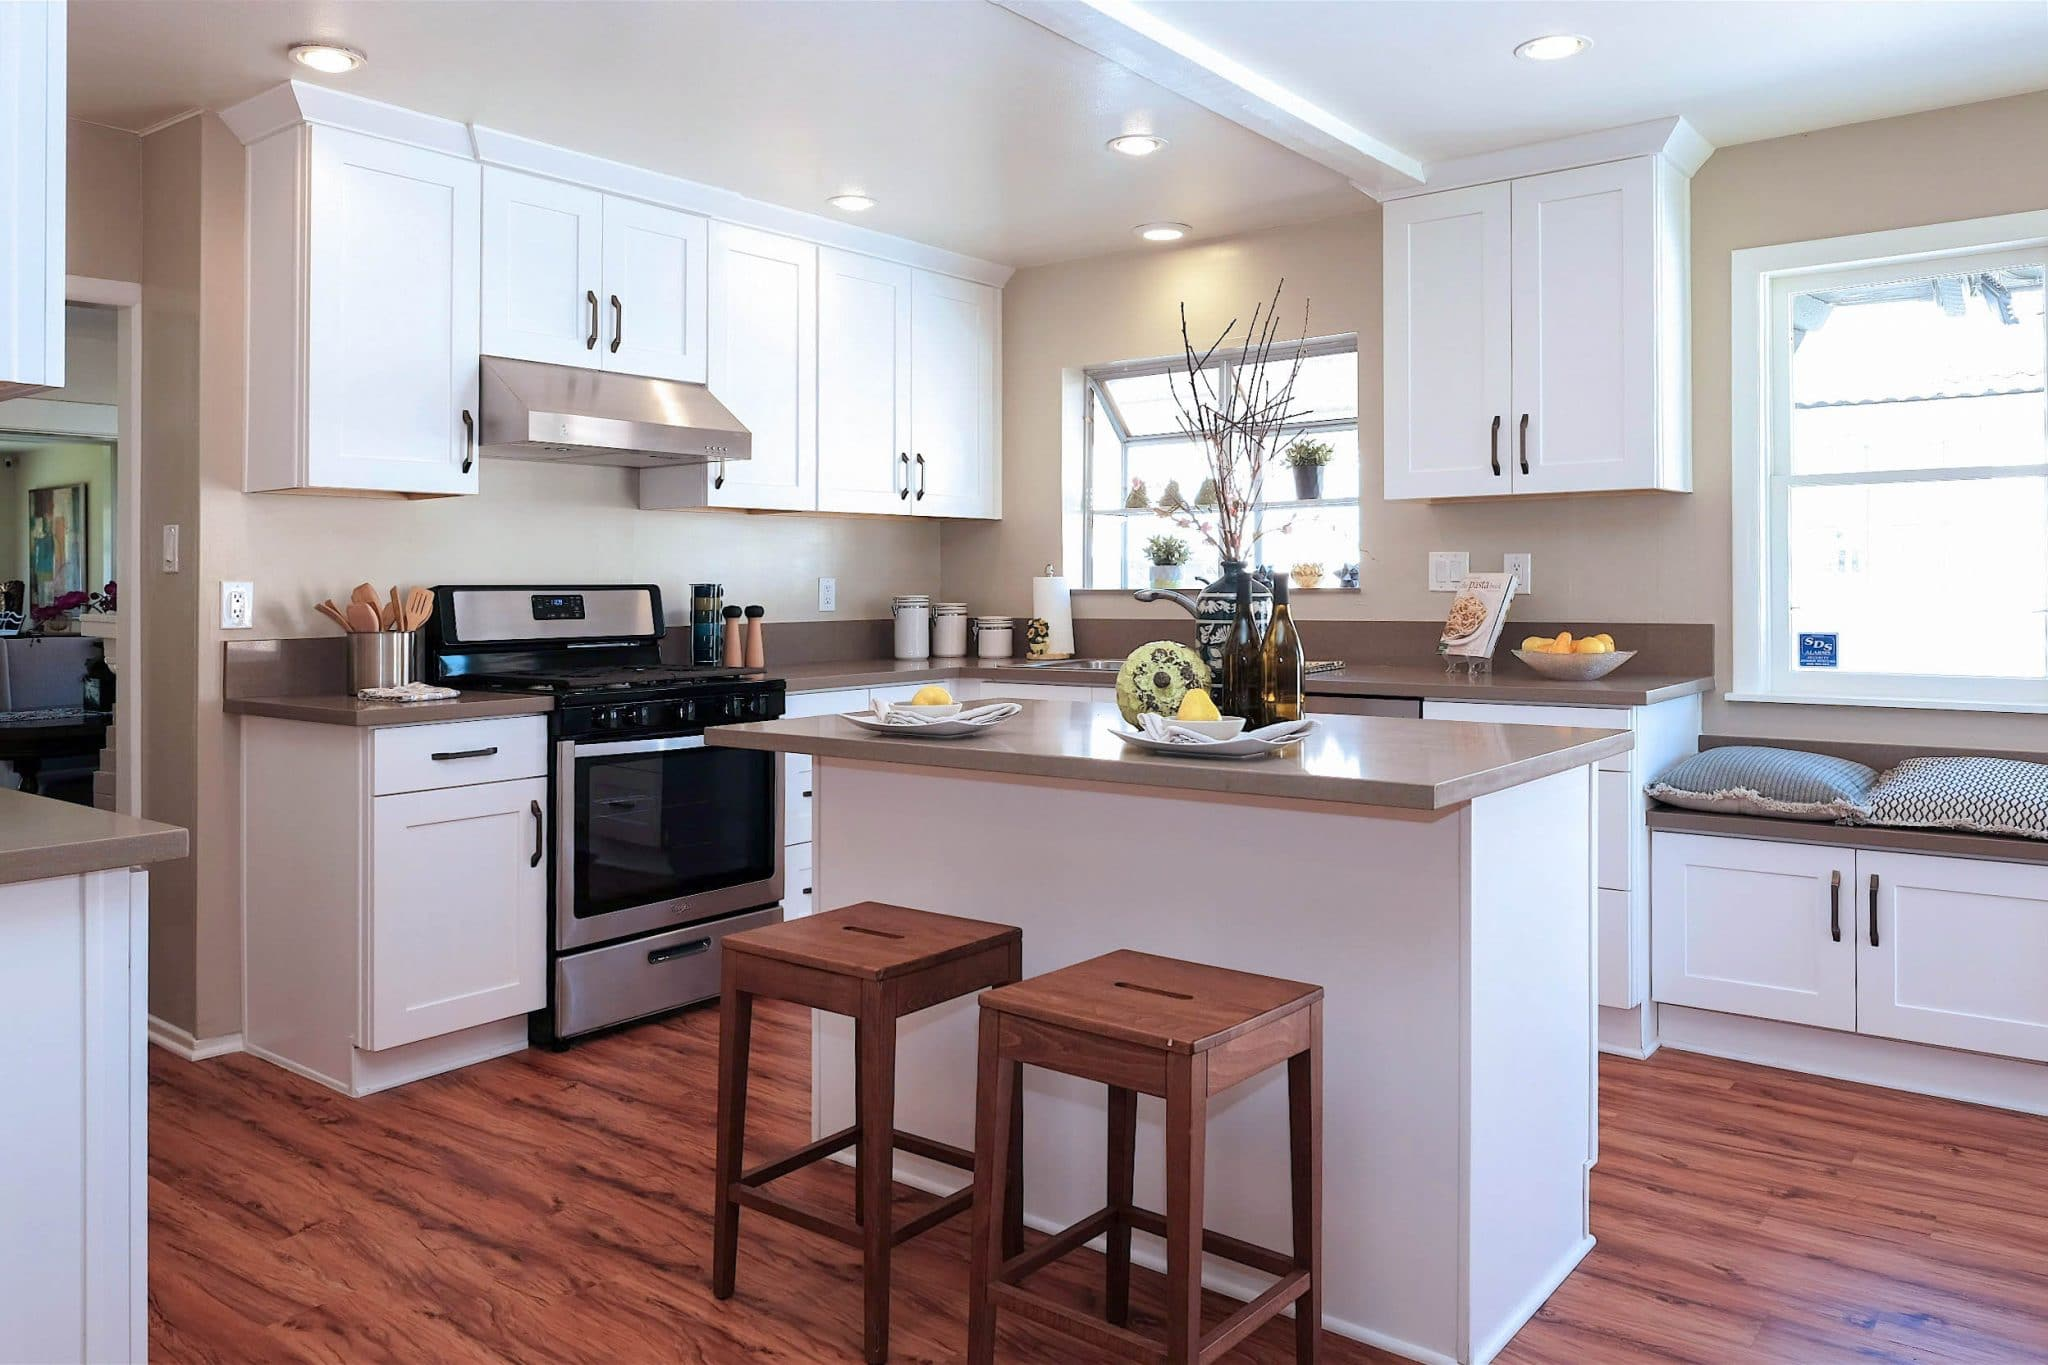 What Is A Shaker Style Kitchen Cabinet Best Online Cabinets